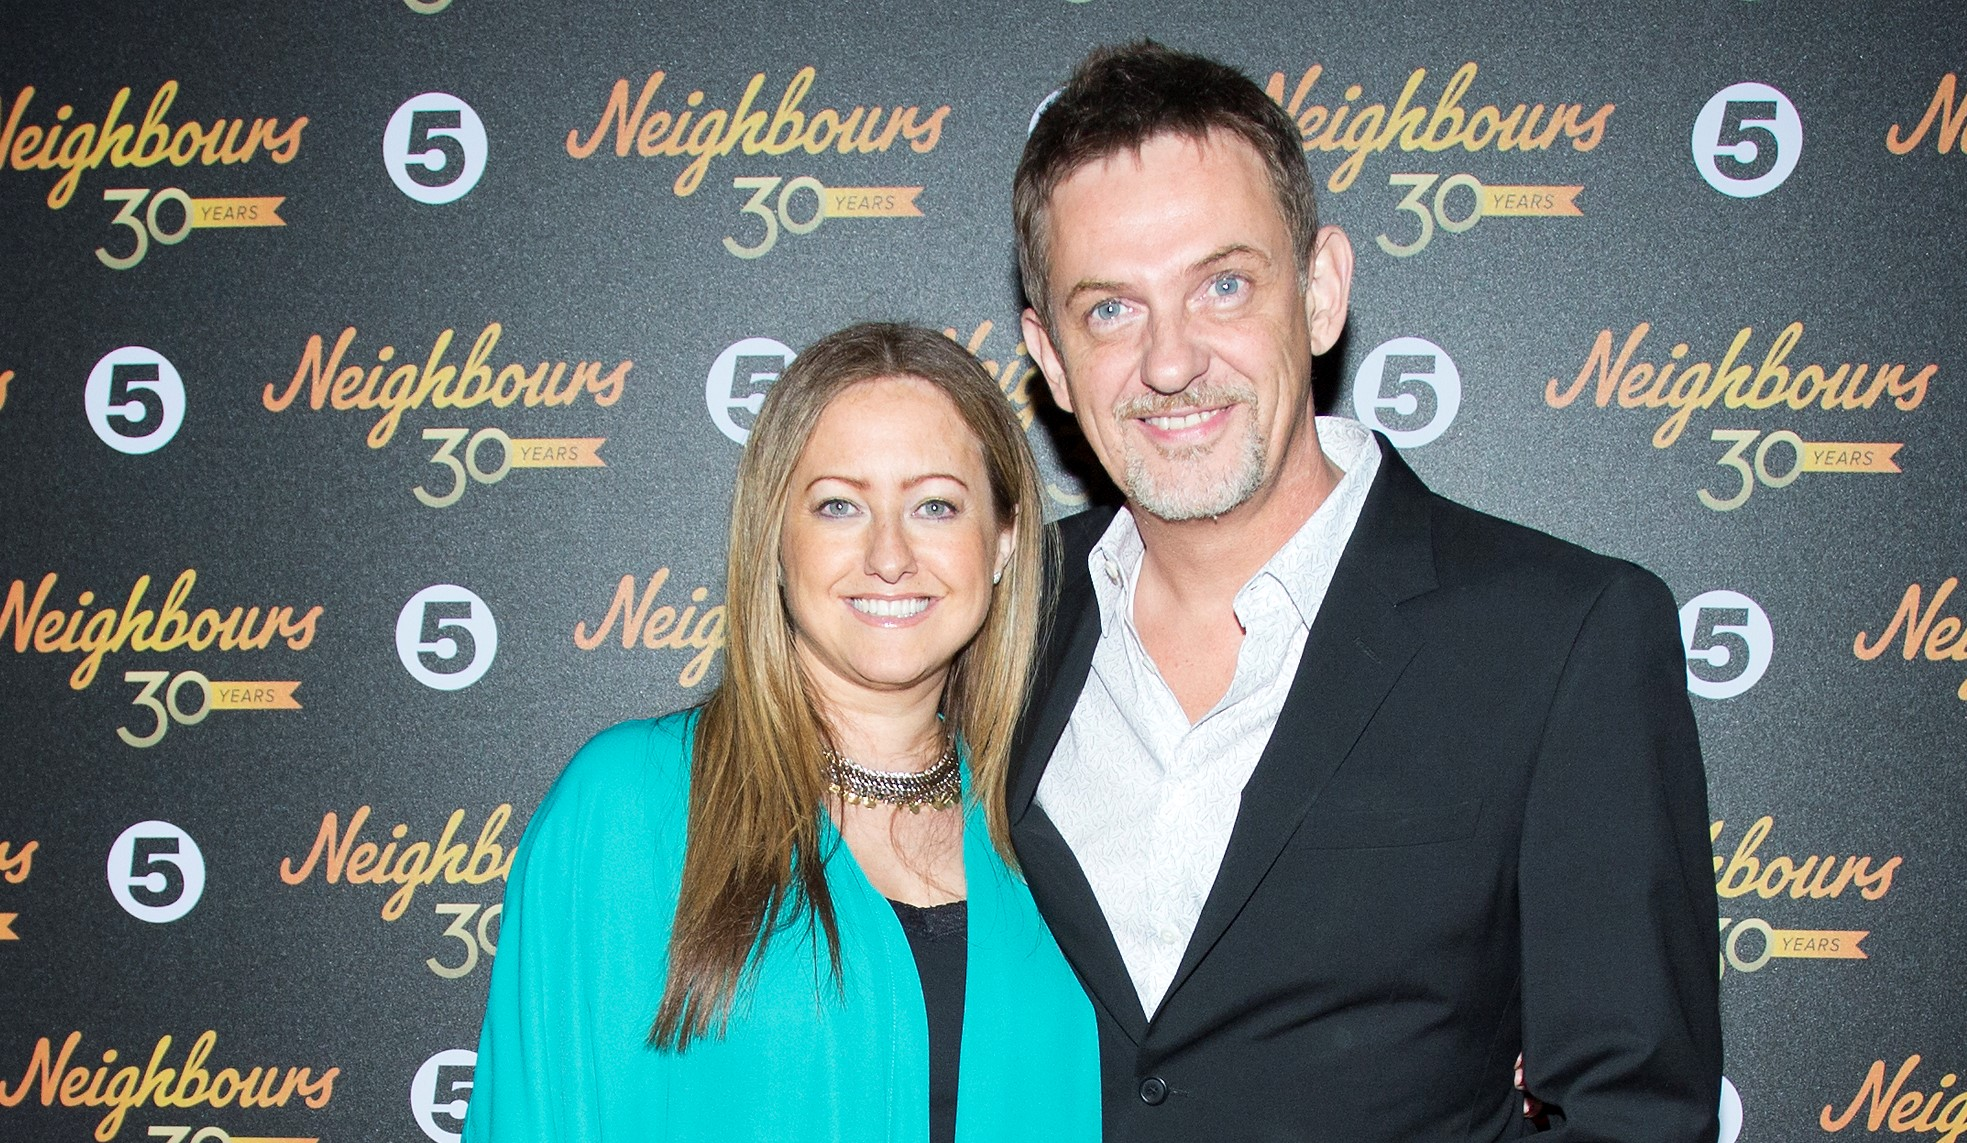 Matthew Wright spent Christmas away from wife Amelia (Credit: PA)